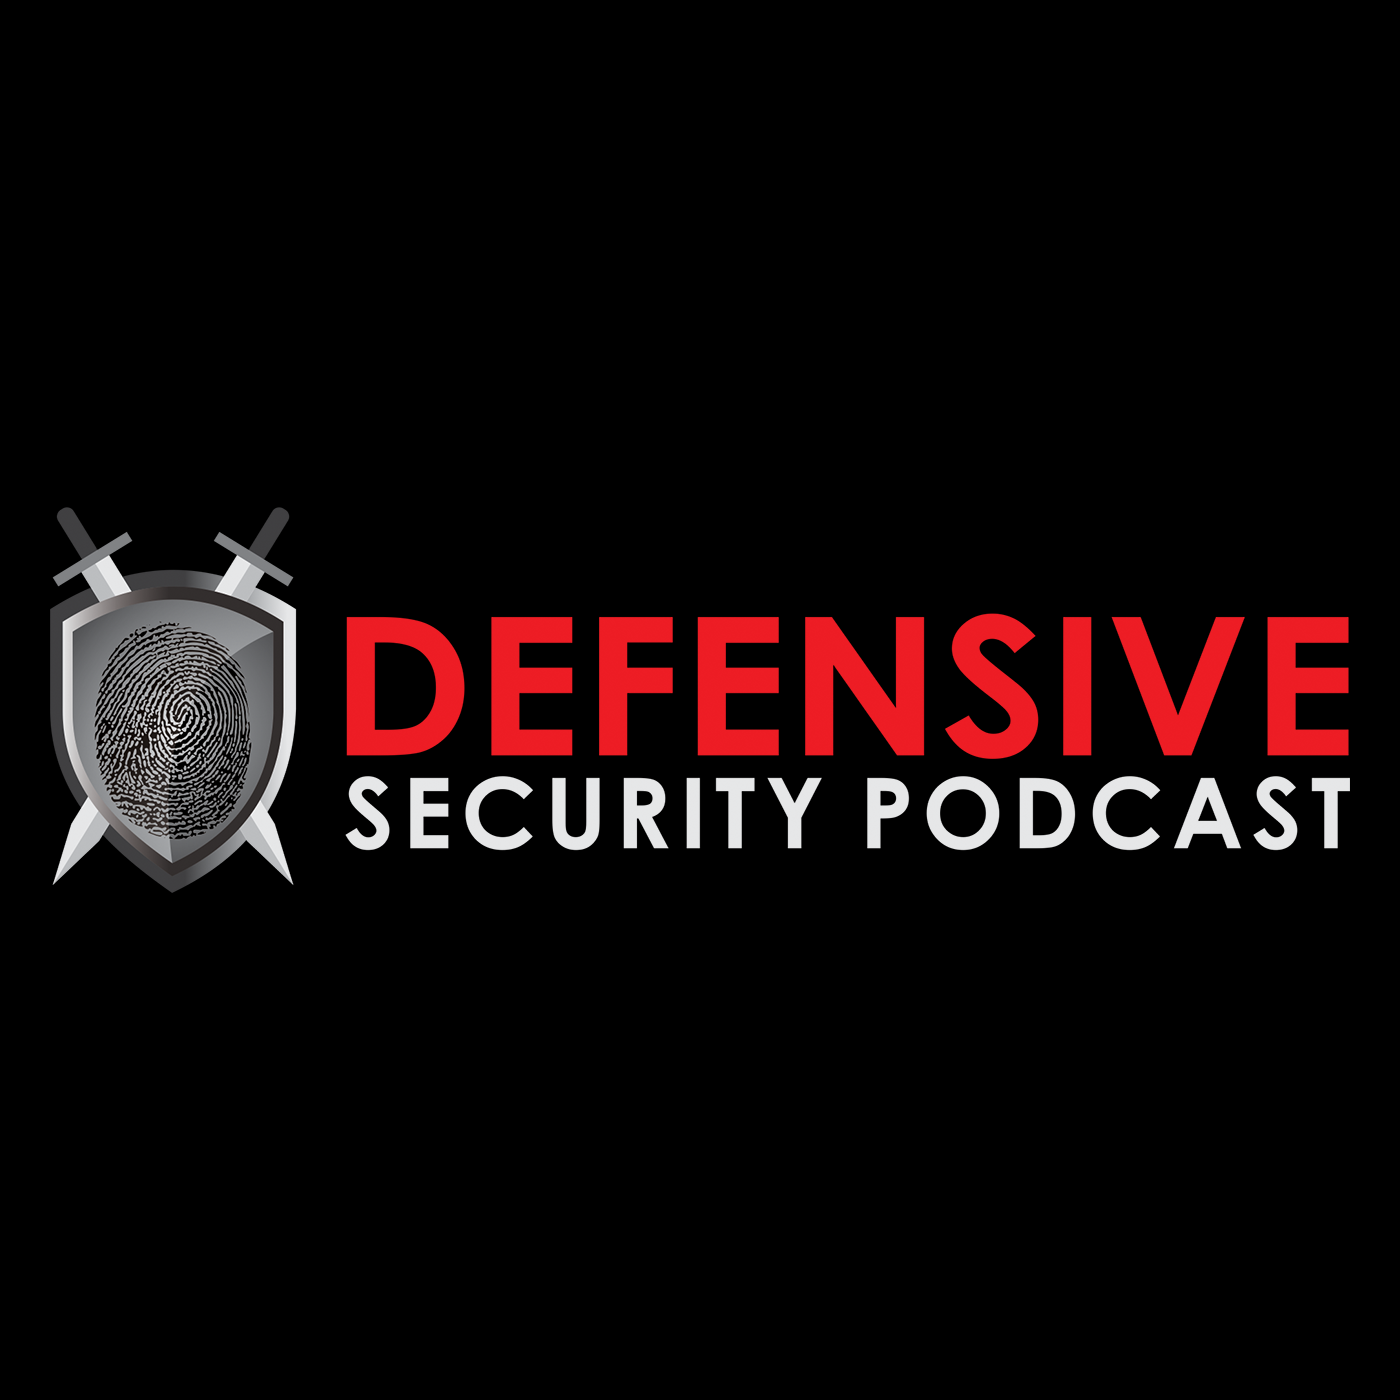 Defensive Security Podcast Episode 253